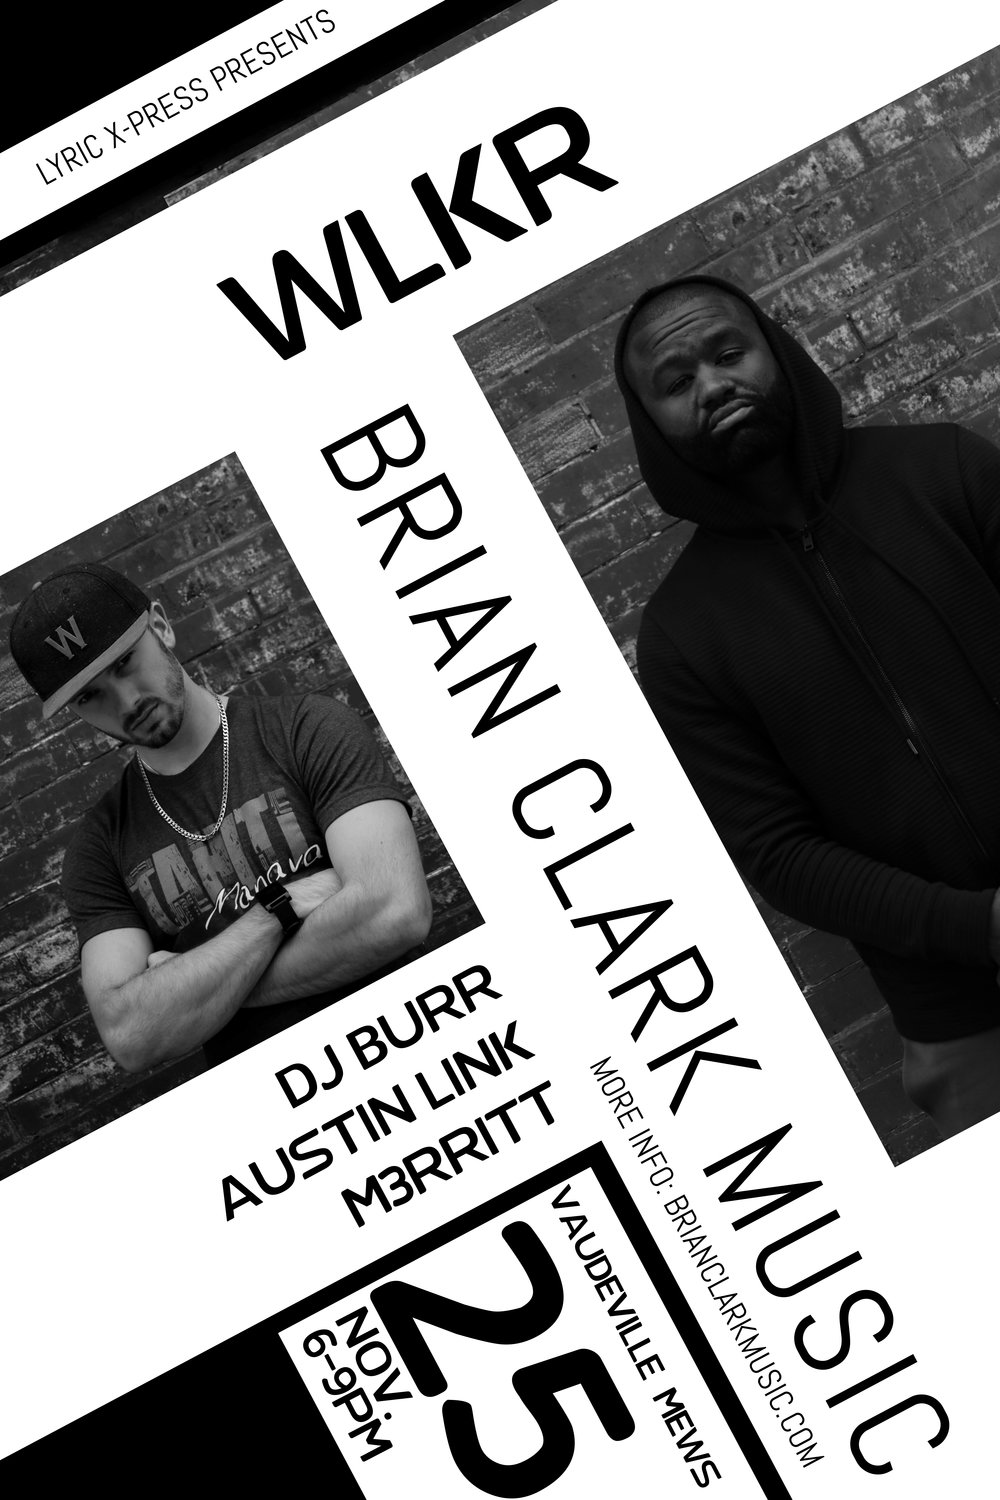 Wlkr brian clark music brian clark music copy of black and white concert poster flyer template two photos 3g maxwellsz